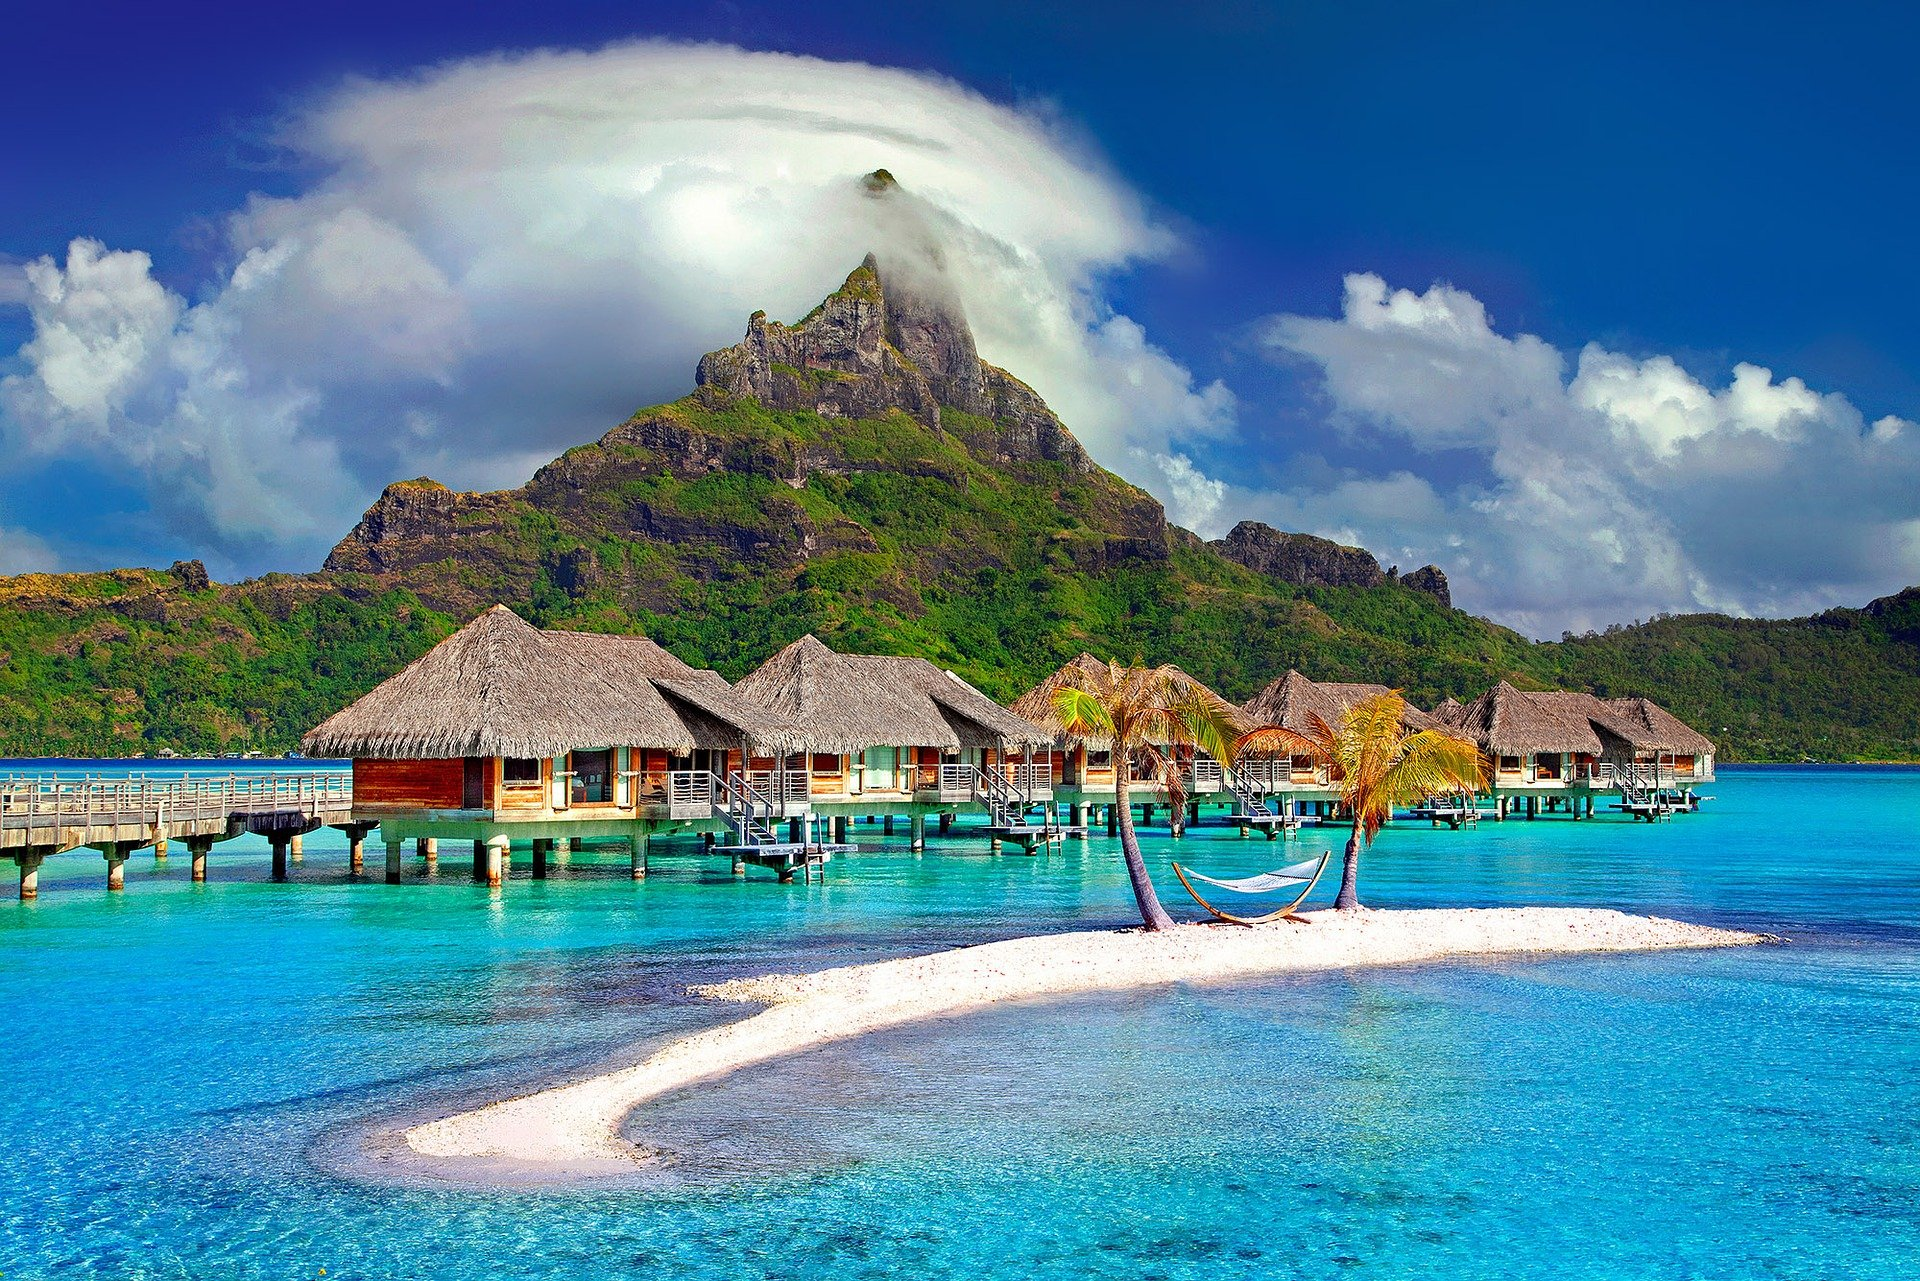 Best places to visit for a luxurious vacation